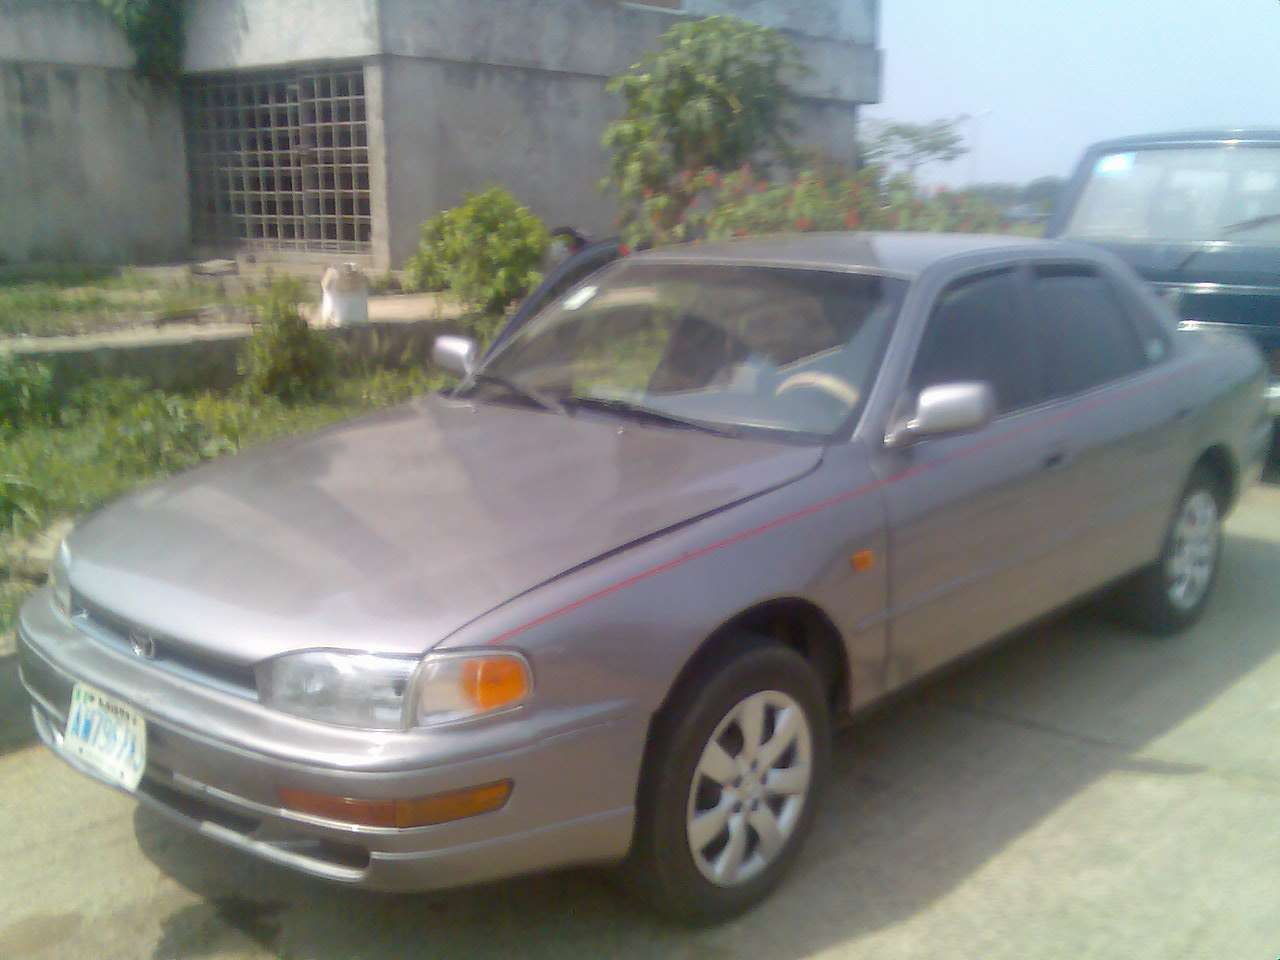 1996 toyota camry for sale(nigerian used).going for 580k only